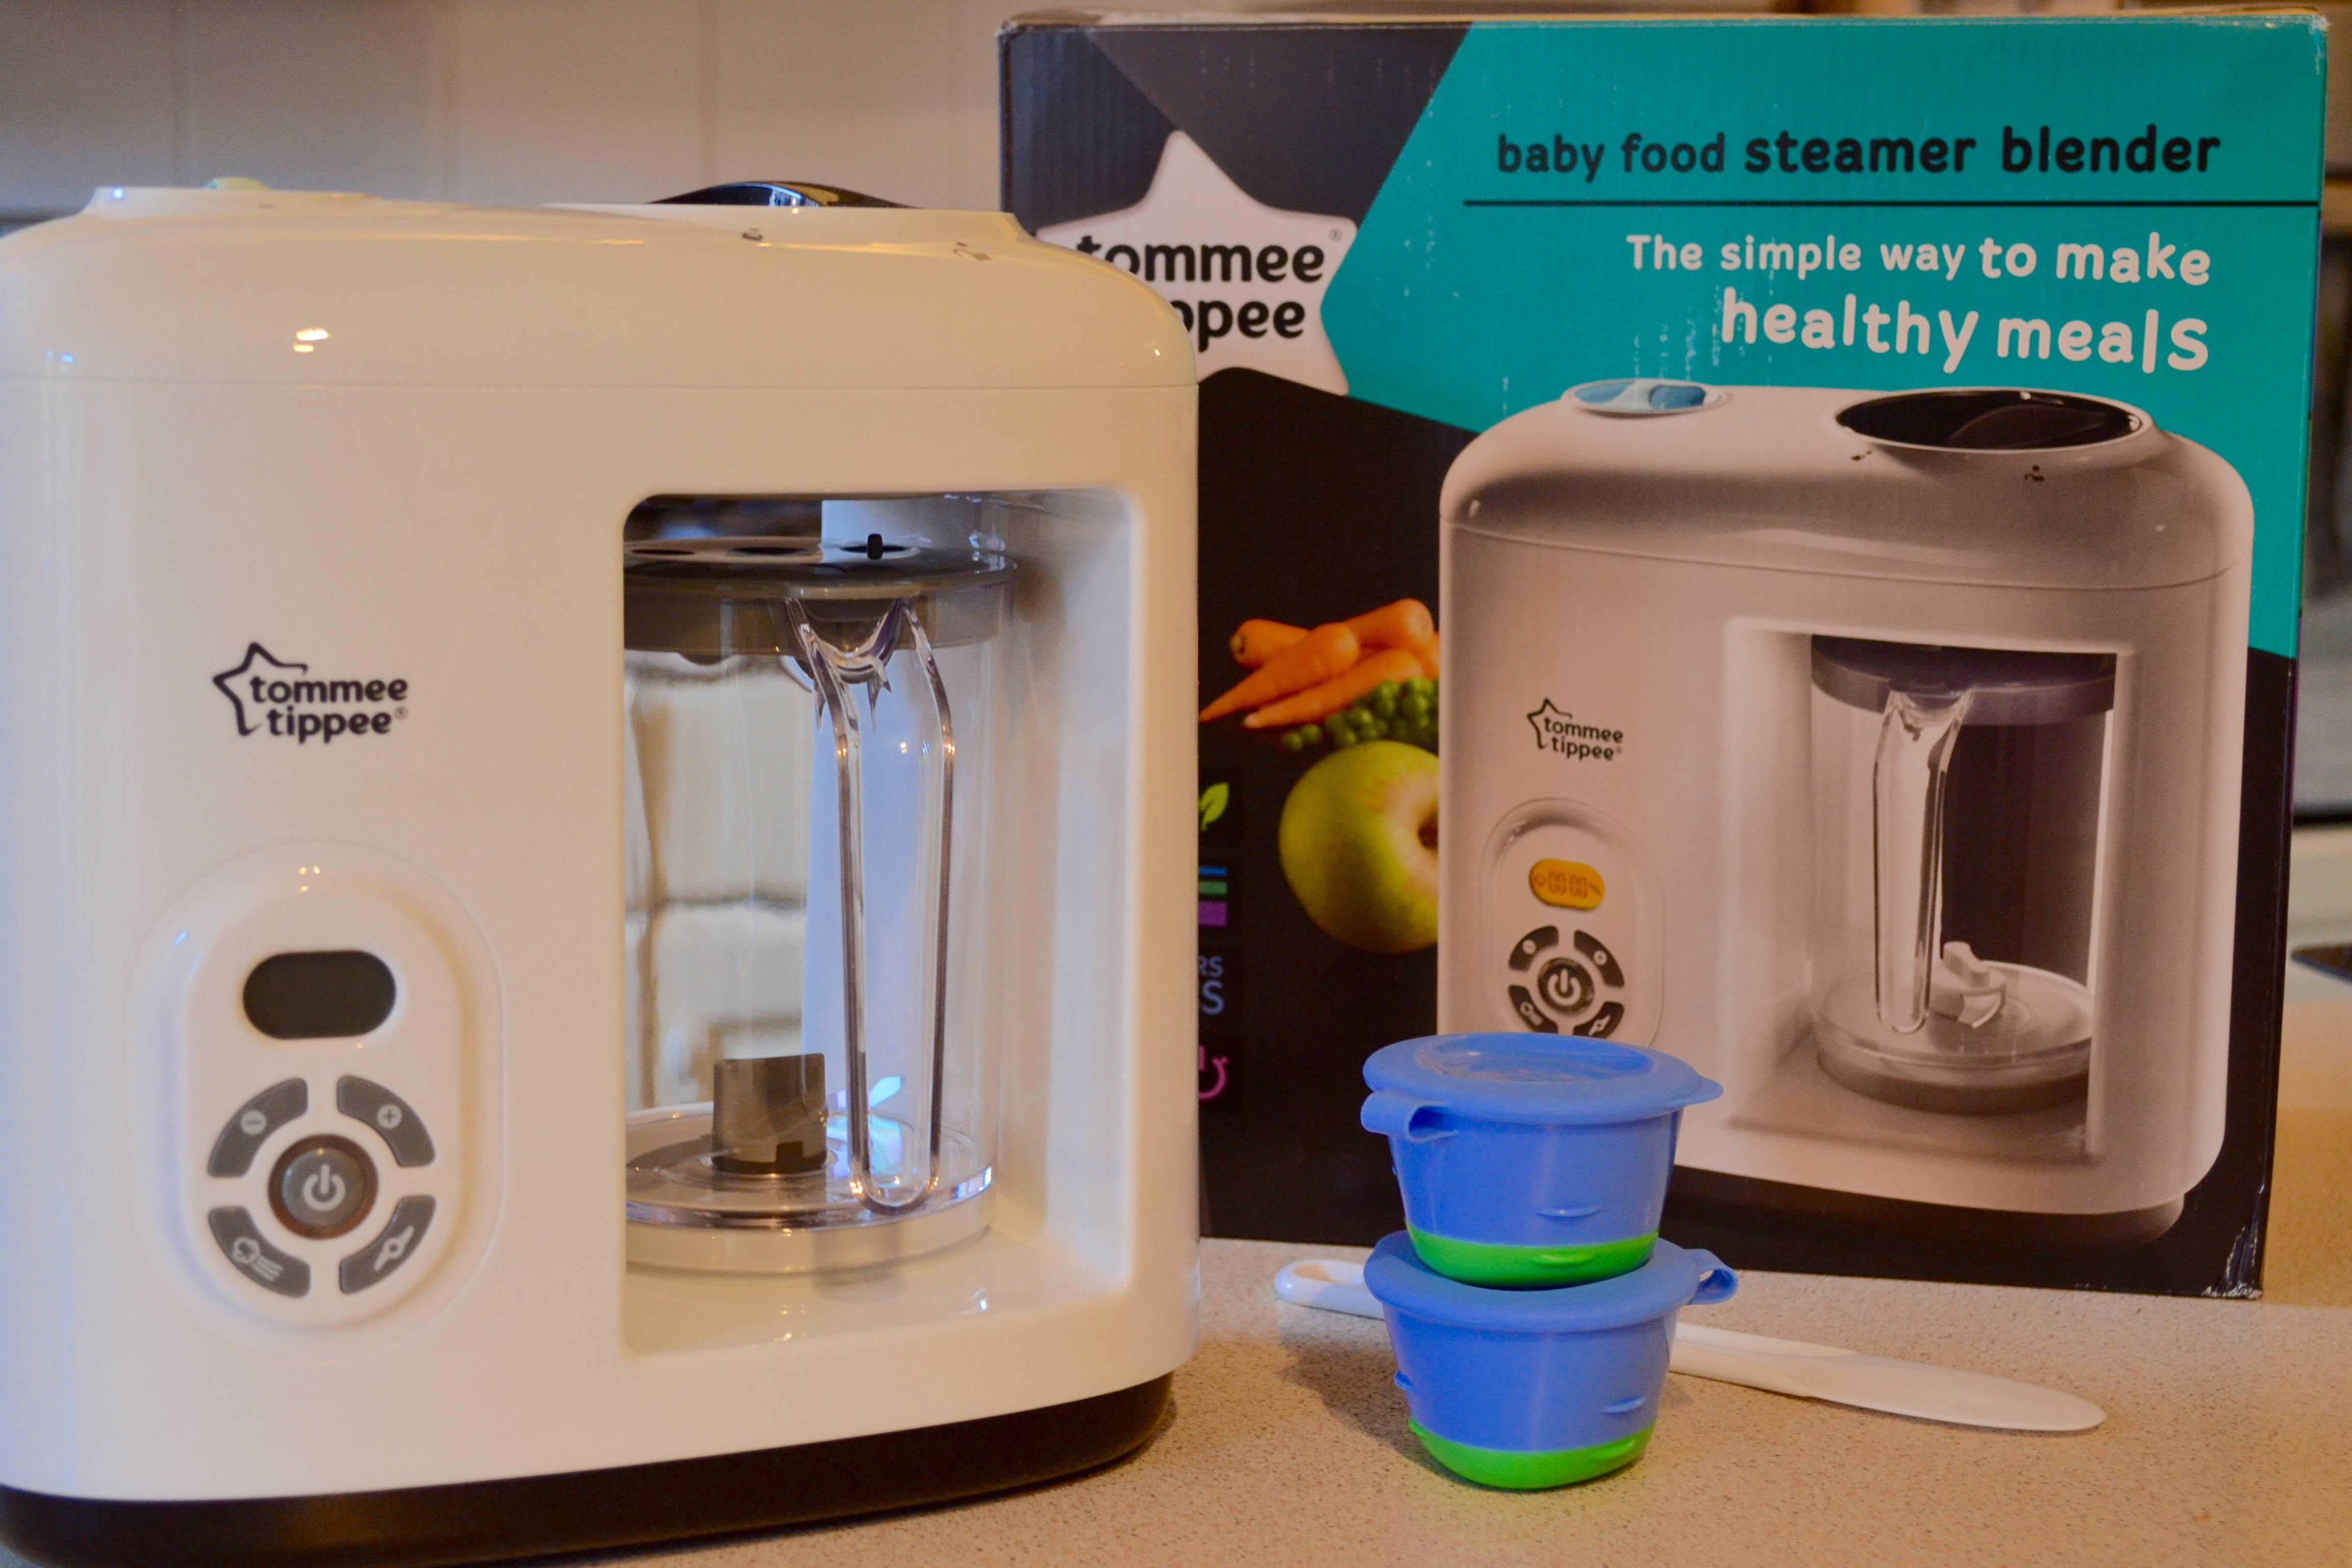 Review Tommee Tippee Steamer Blender The Foodie Family Blog